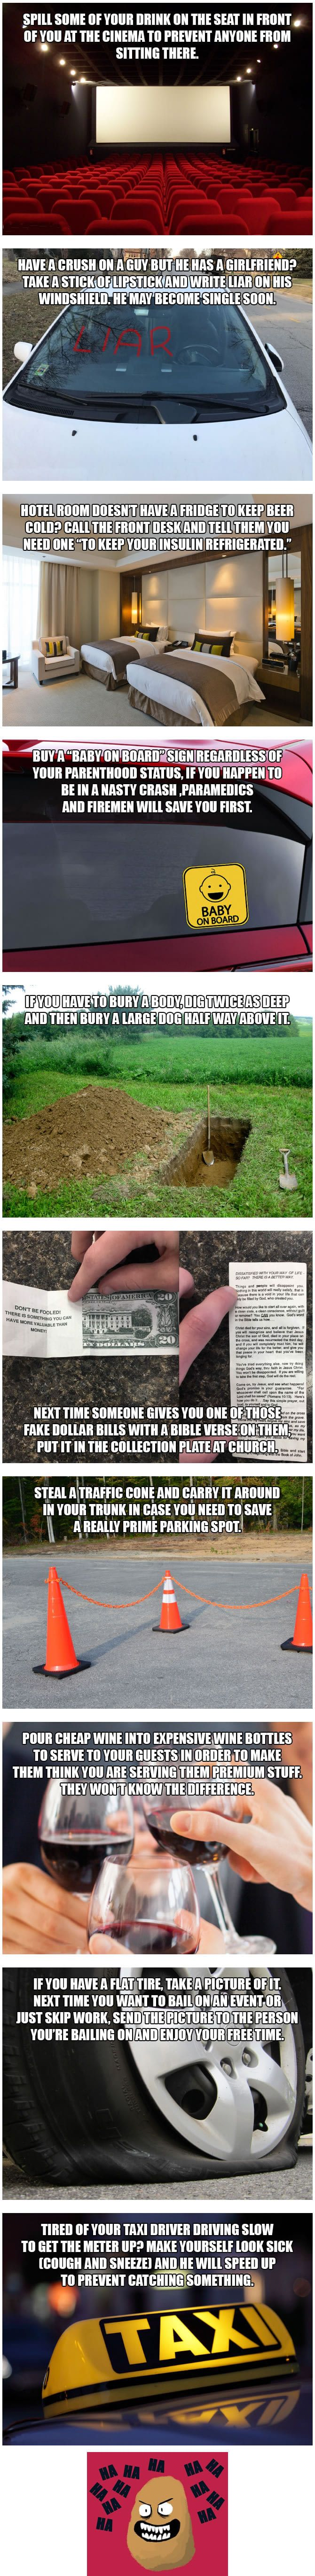 10 Wicked Life Hacks That Only A Dishonest Genius Would Use - 9GAG